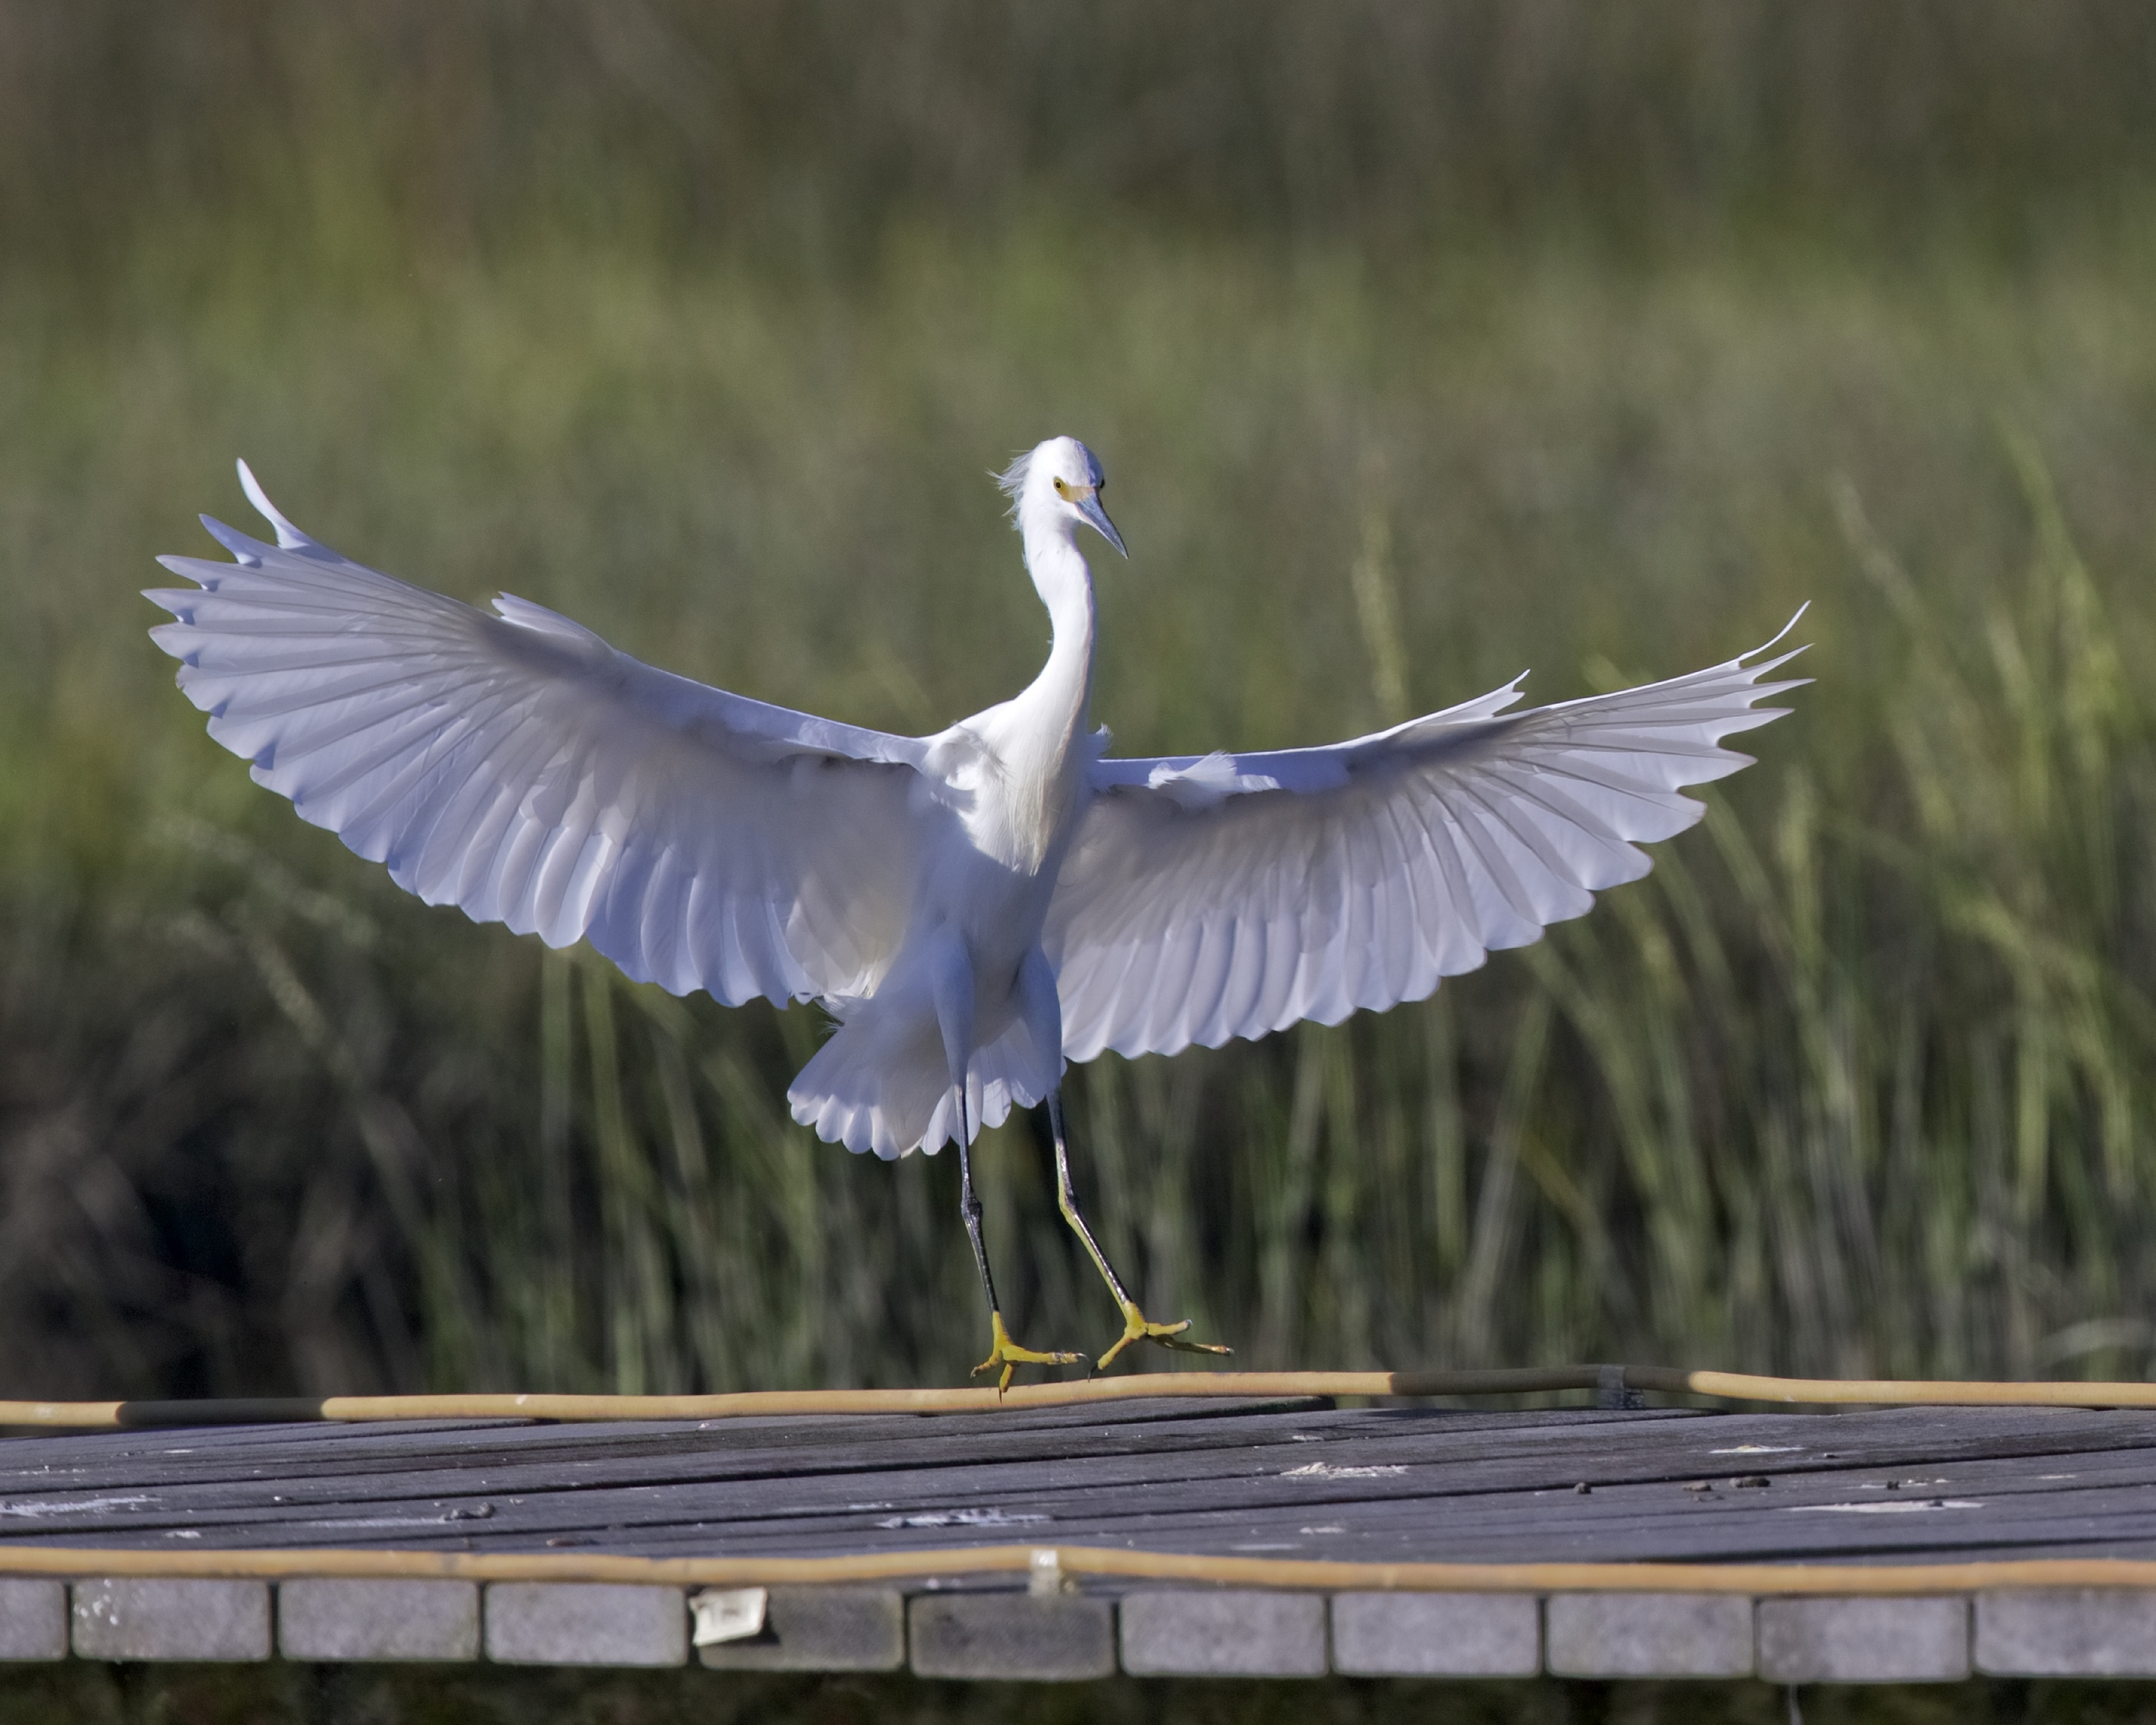 Then the Snowy Egret Blows in on the dock!